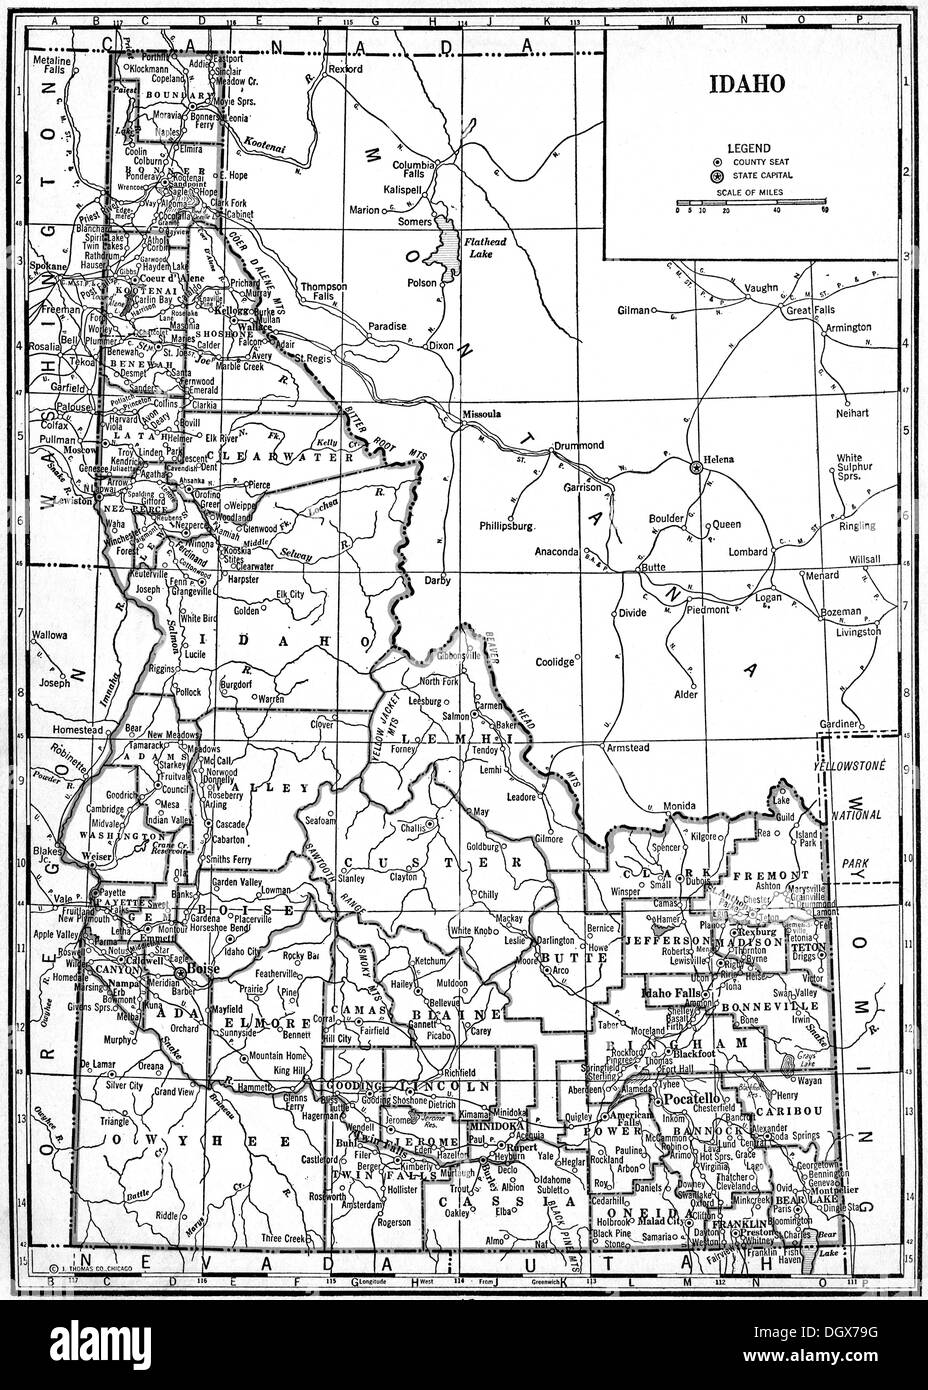 Old map of Idaho state, 1930\'s Stock Photo: 62042108 - Alamy